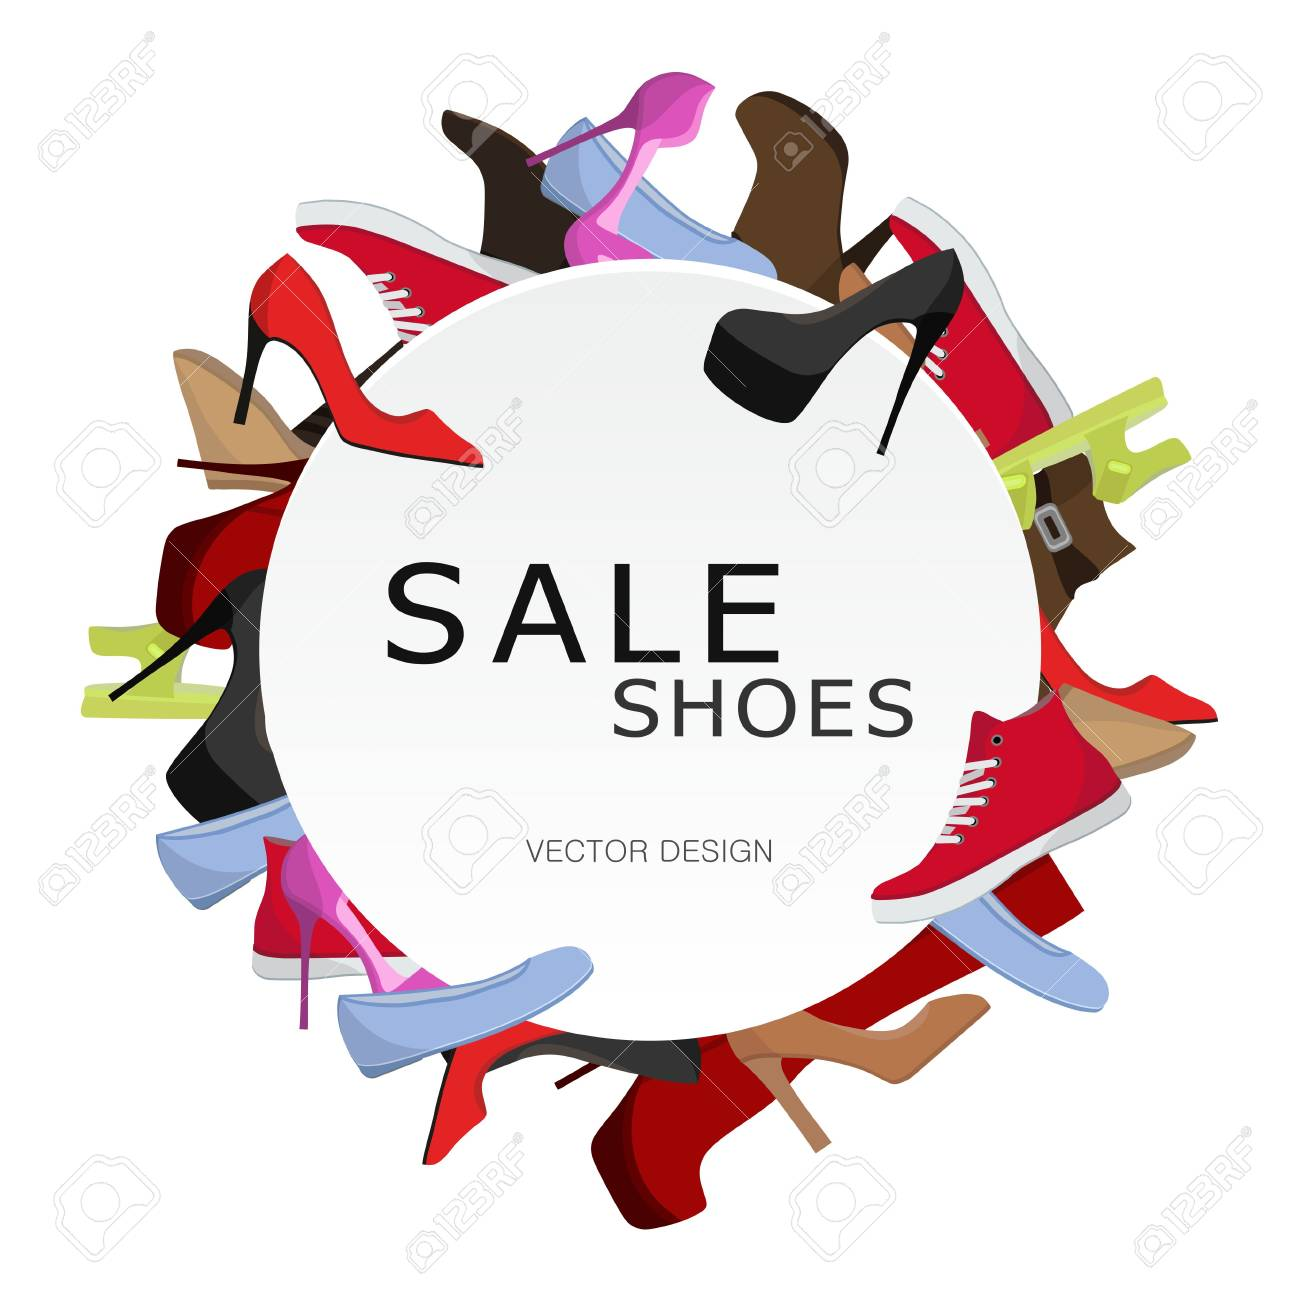 Female Shoes Sale Round Frame, Colorful